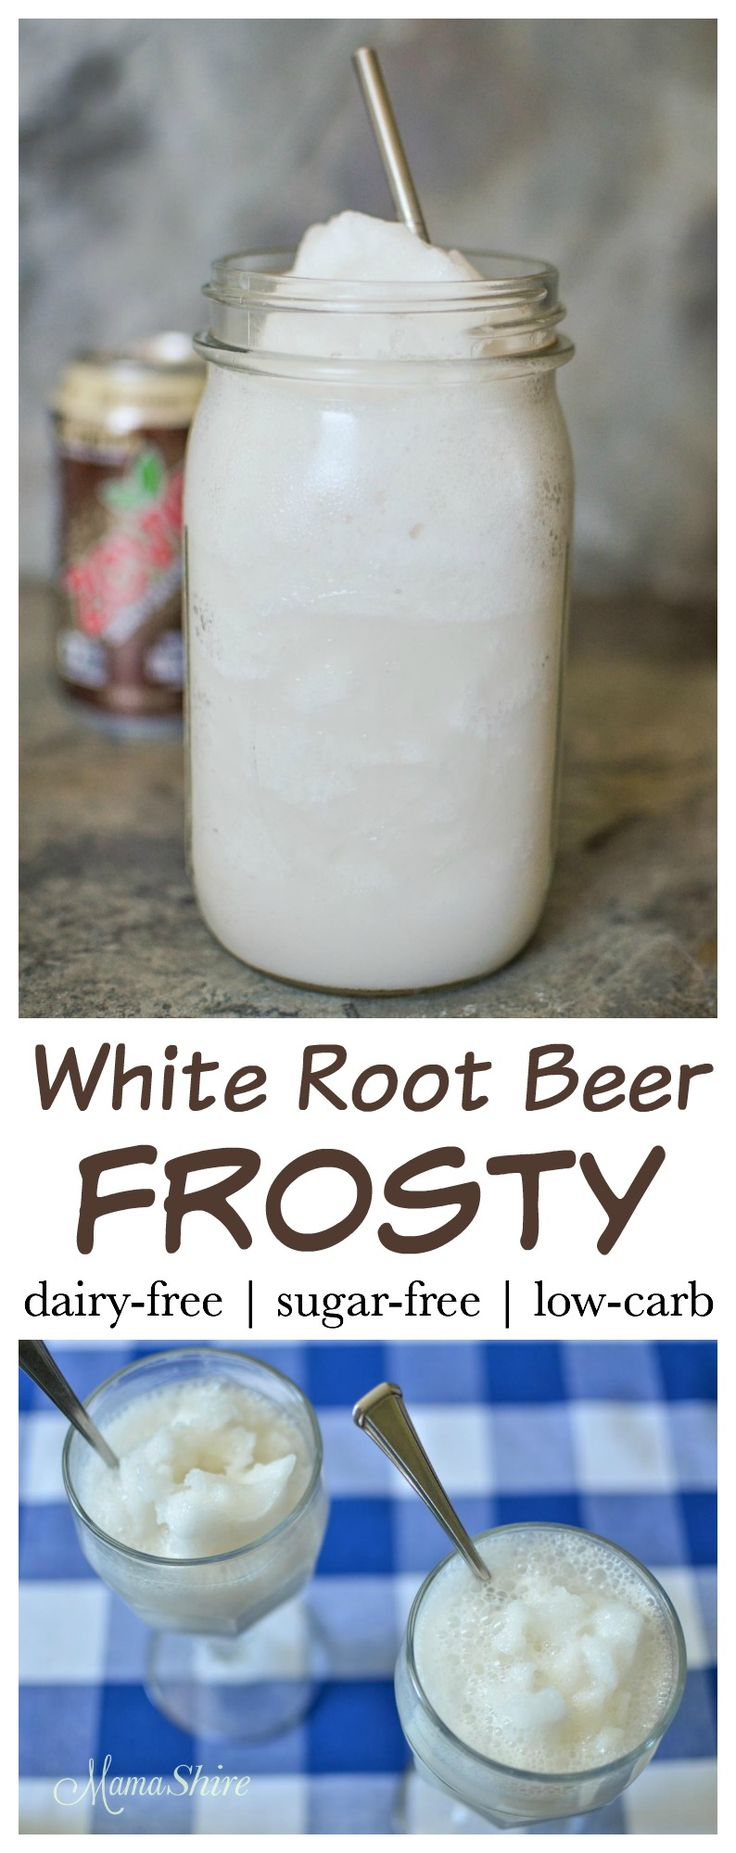 New twist on an old favorite - White Root Beer Frosty made dairy-free and sugar-free. Featuring Zevia Root Beer with no caramel coloring! THM - FP